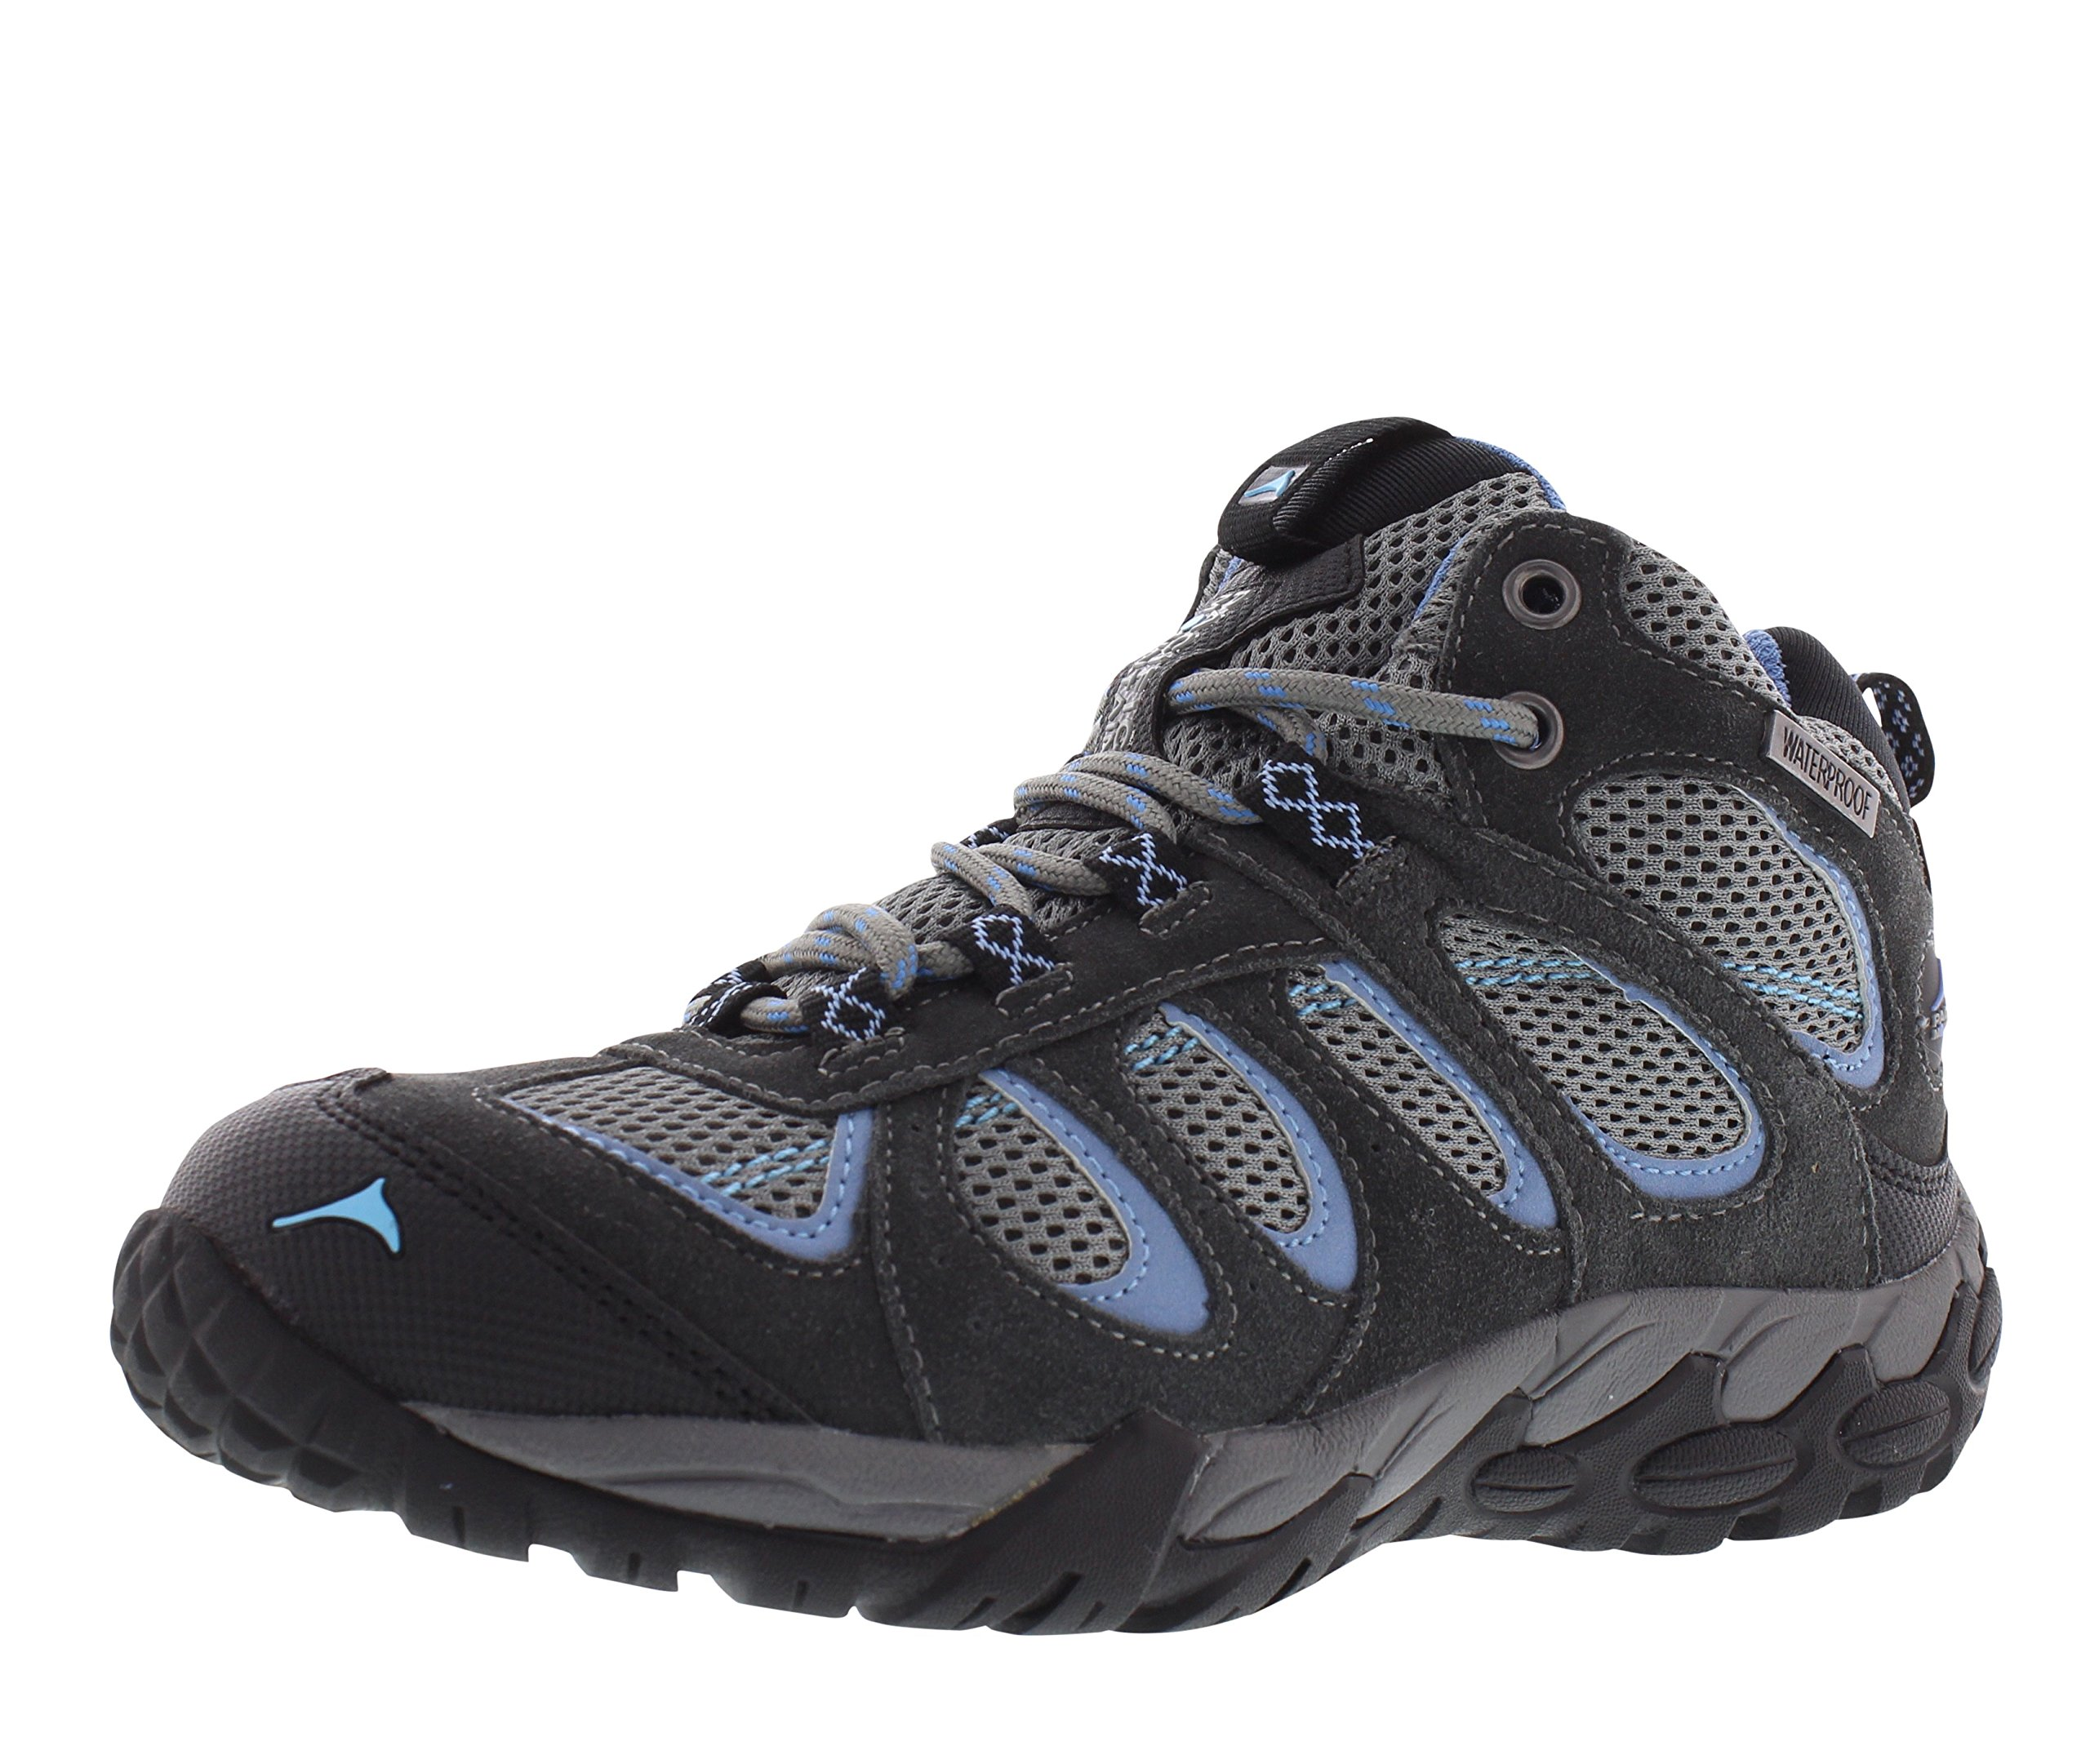 Pacific Mountain Moraine Women's Waterproof Hiking Backpacking Mid-Cut Grey/Black/Blue Boots Size 7 by Pacific Mountain